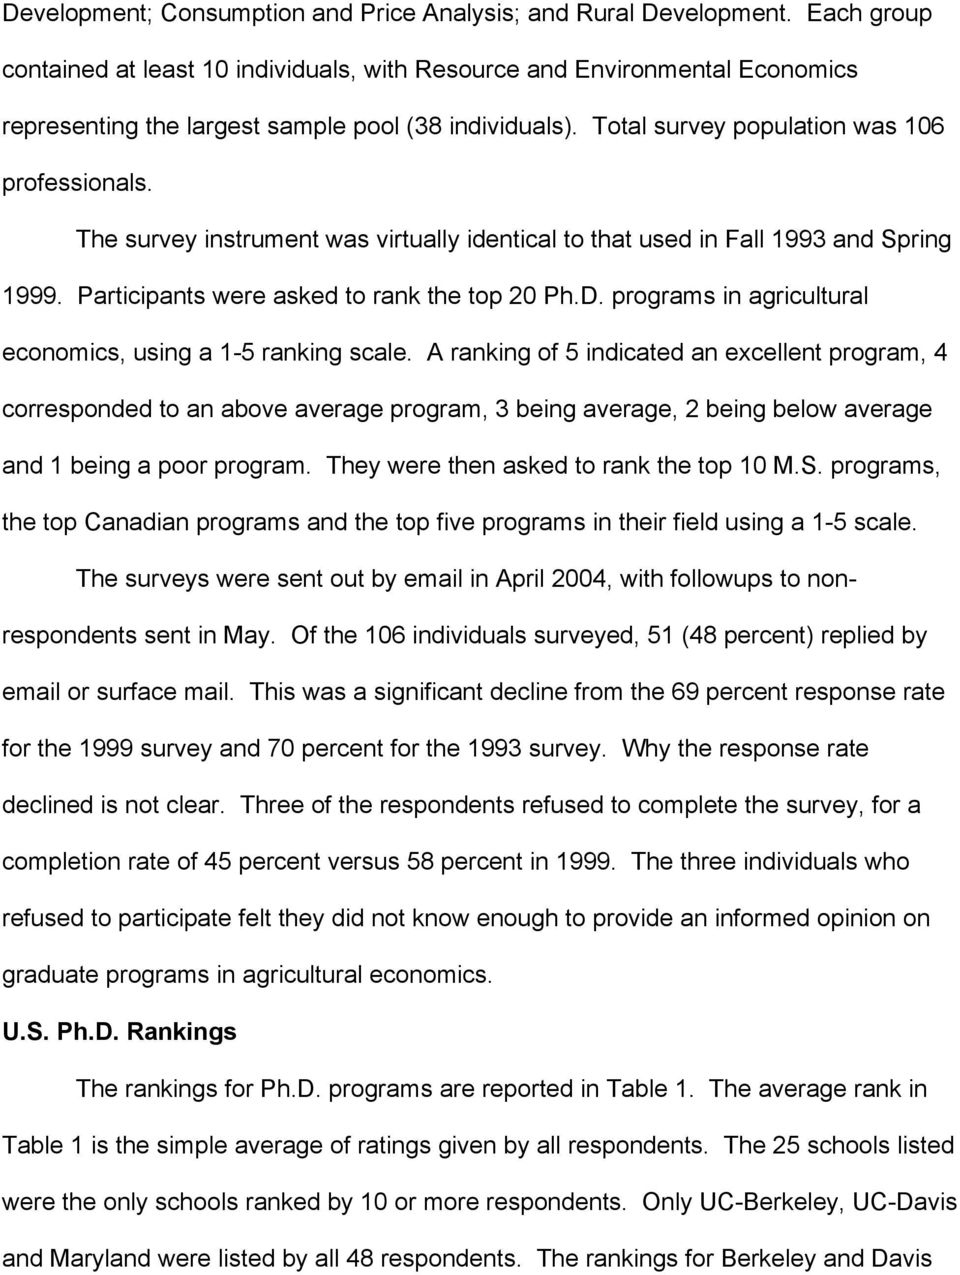 The survey instrument was virtually identical to that used in Fall 1993 and Spring 1999. Participants were asked to rank the top 20 Ph.D. programs in agricultural economics, using a 1-5 ranking scale.